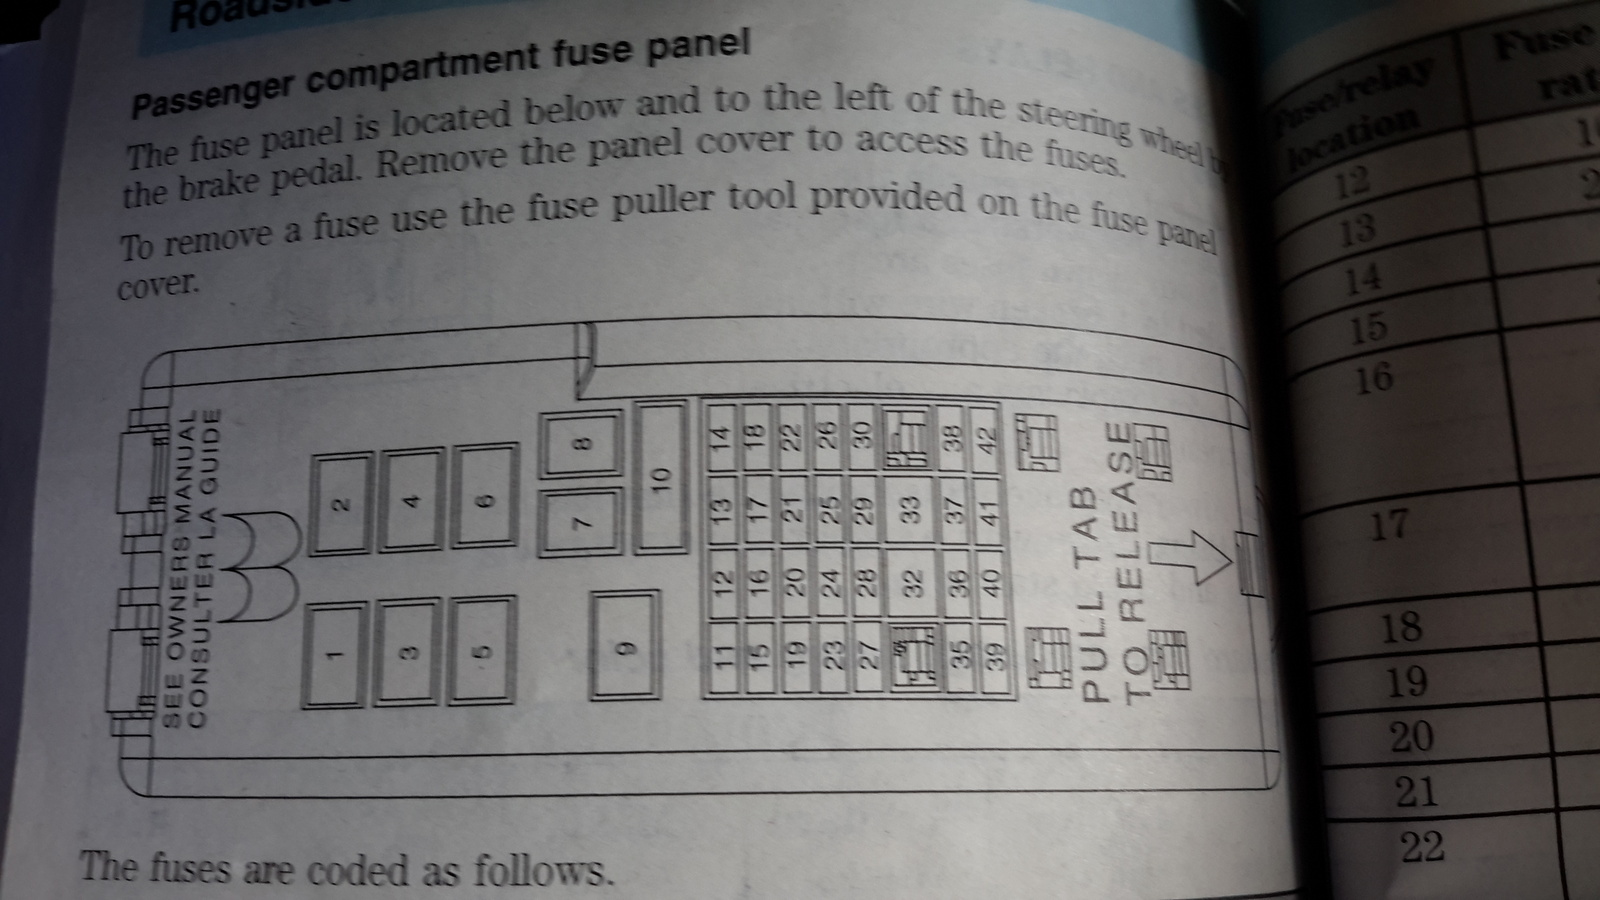 Ford Taurus Fuse Box Simple Guide About Wiring Diagram 02 Location Mercury Sable Questions Where Is The Relay For Power 2002